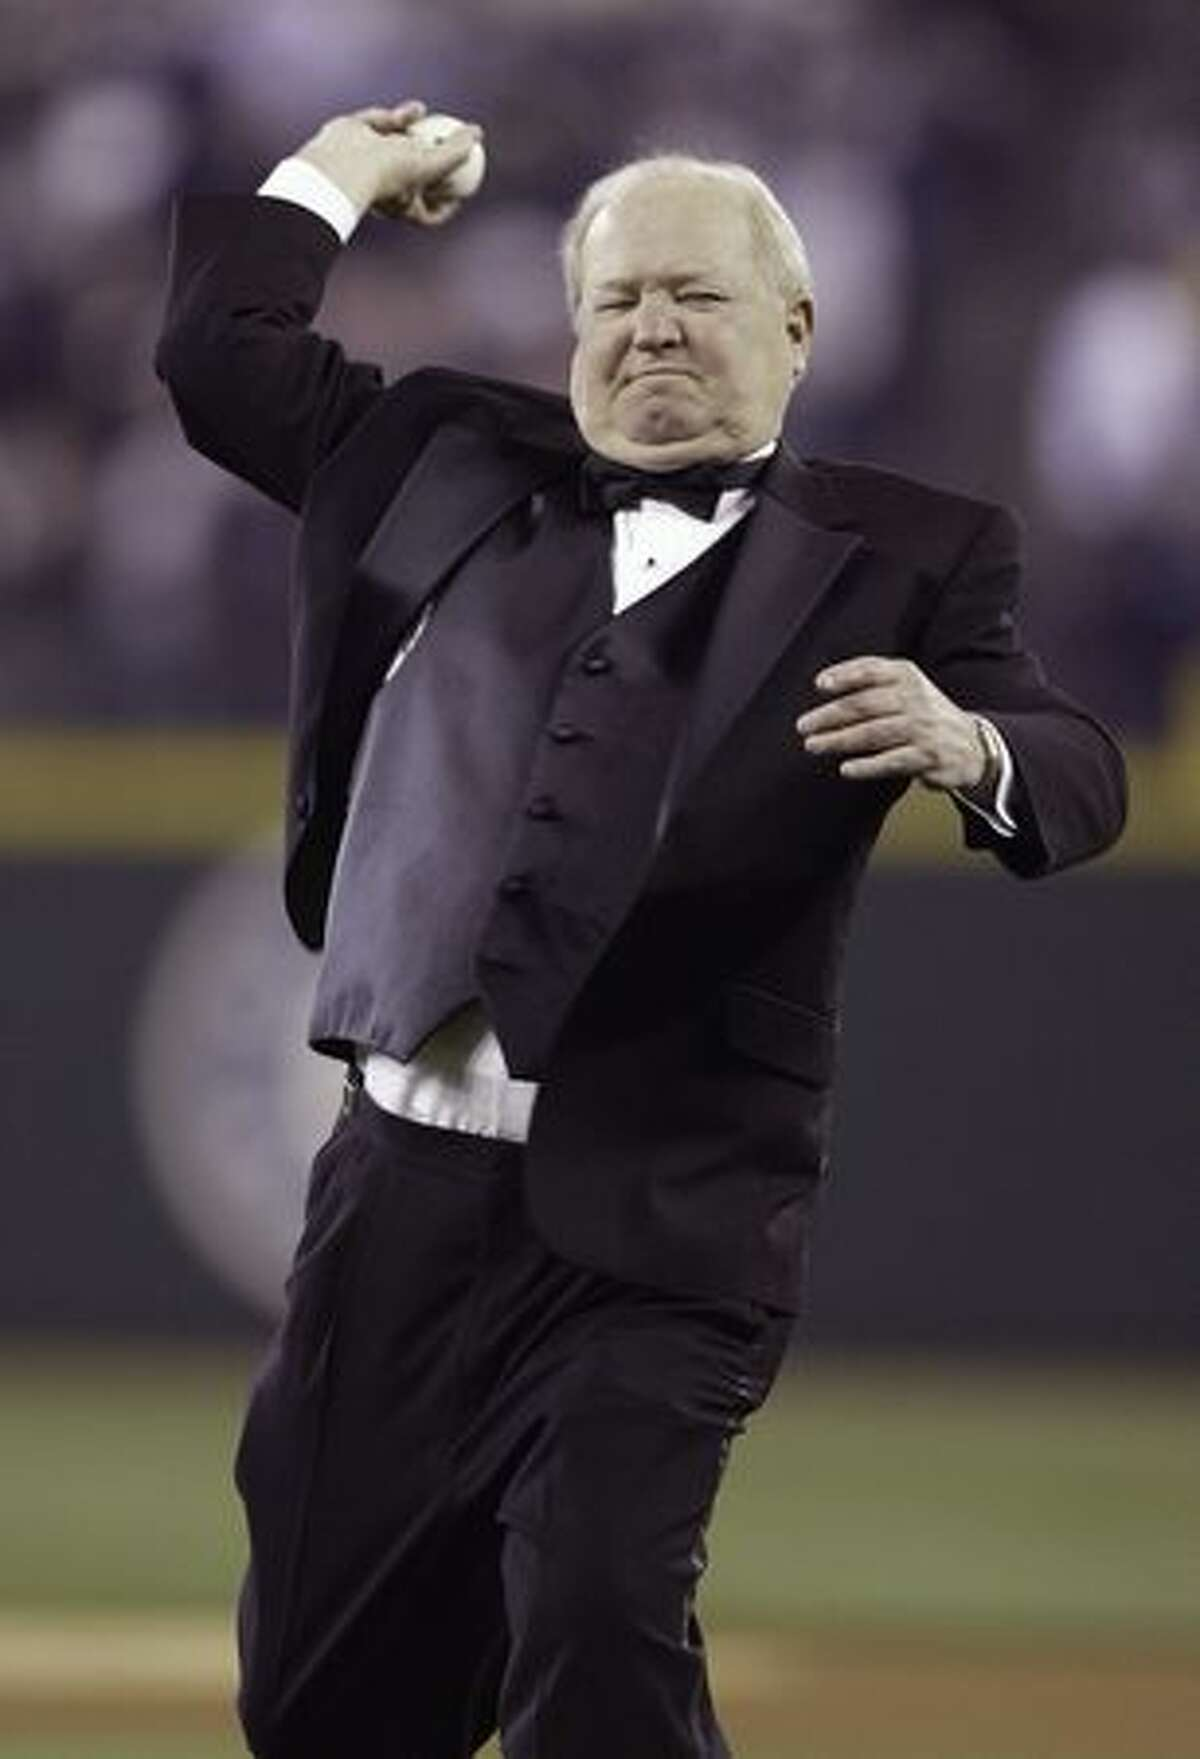 Seattle Mariners play-by-play announcer Dave Niehaus throws out the ceremonial first pitch prior to the Mariners' Home Opener against the Texas Rangers on March 31, 2008 in Seattle, Washington. The Mariners defeated the Rangers 5-2.